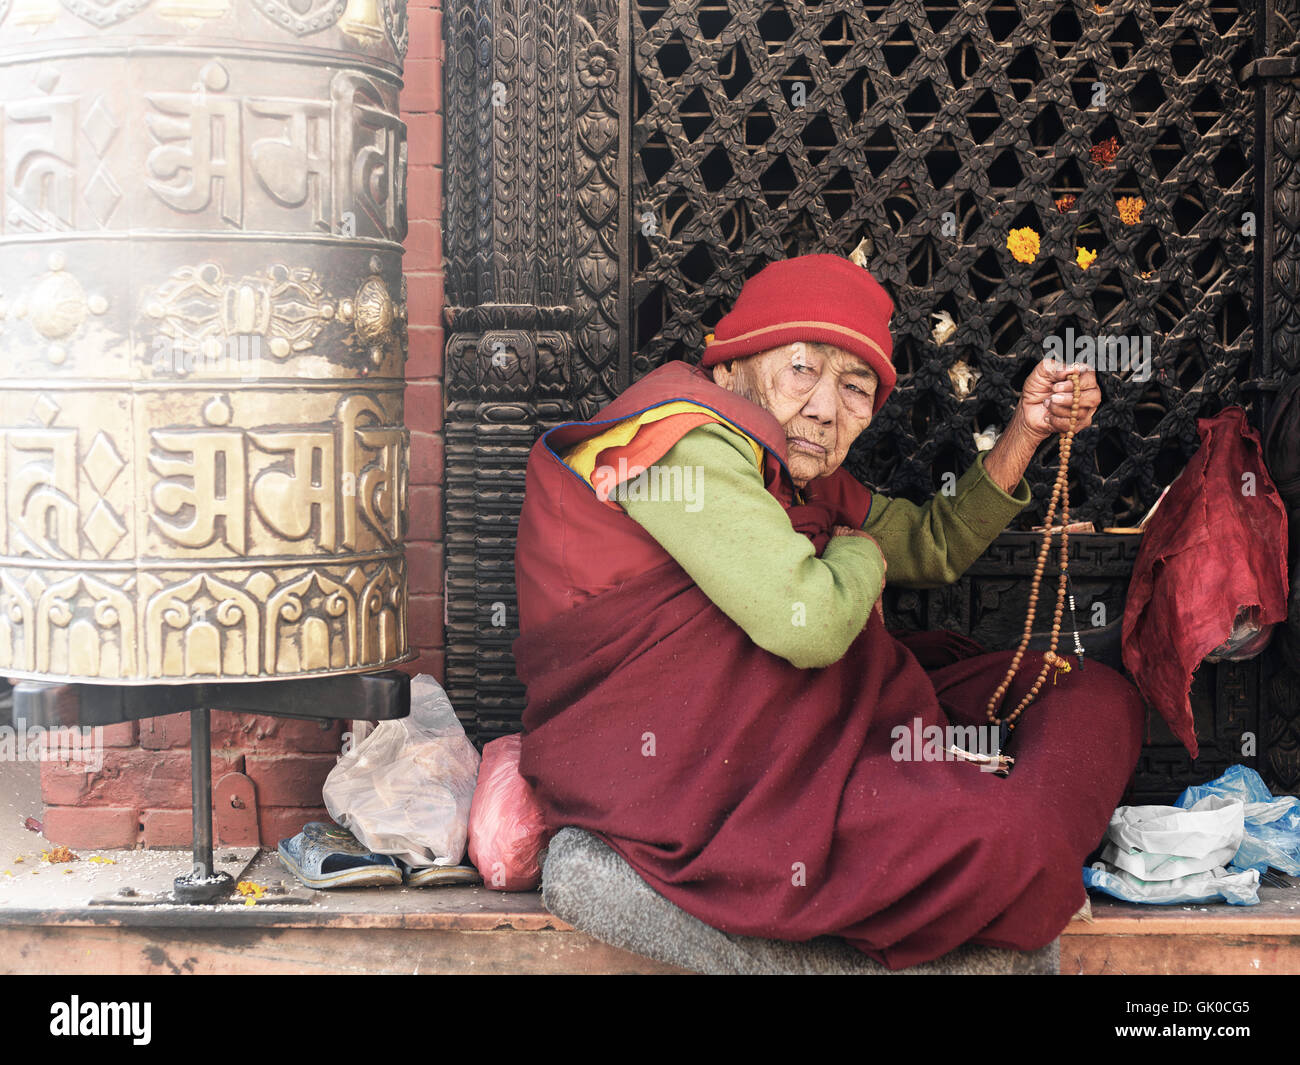 Sitting outside the Boudhanath Pagoda in Kathmandu, Nepal. - Stock Image